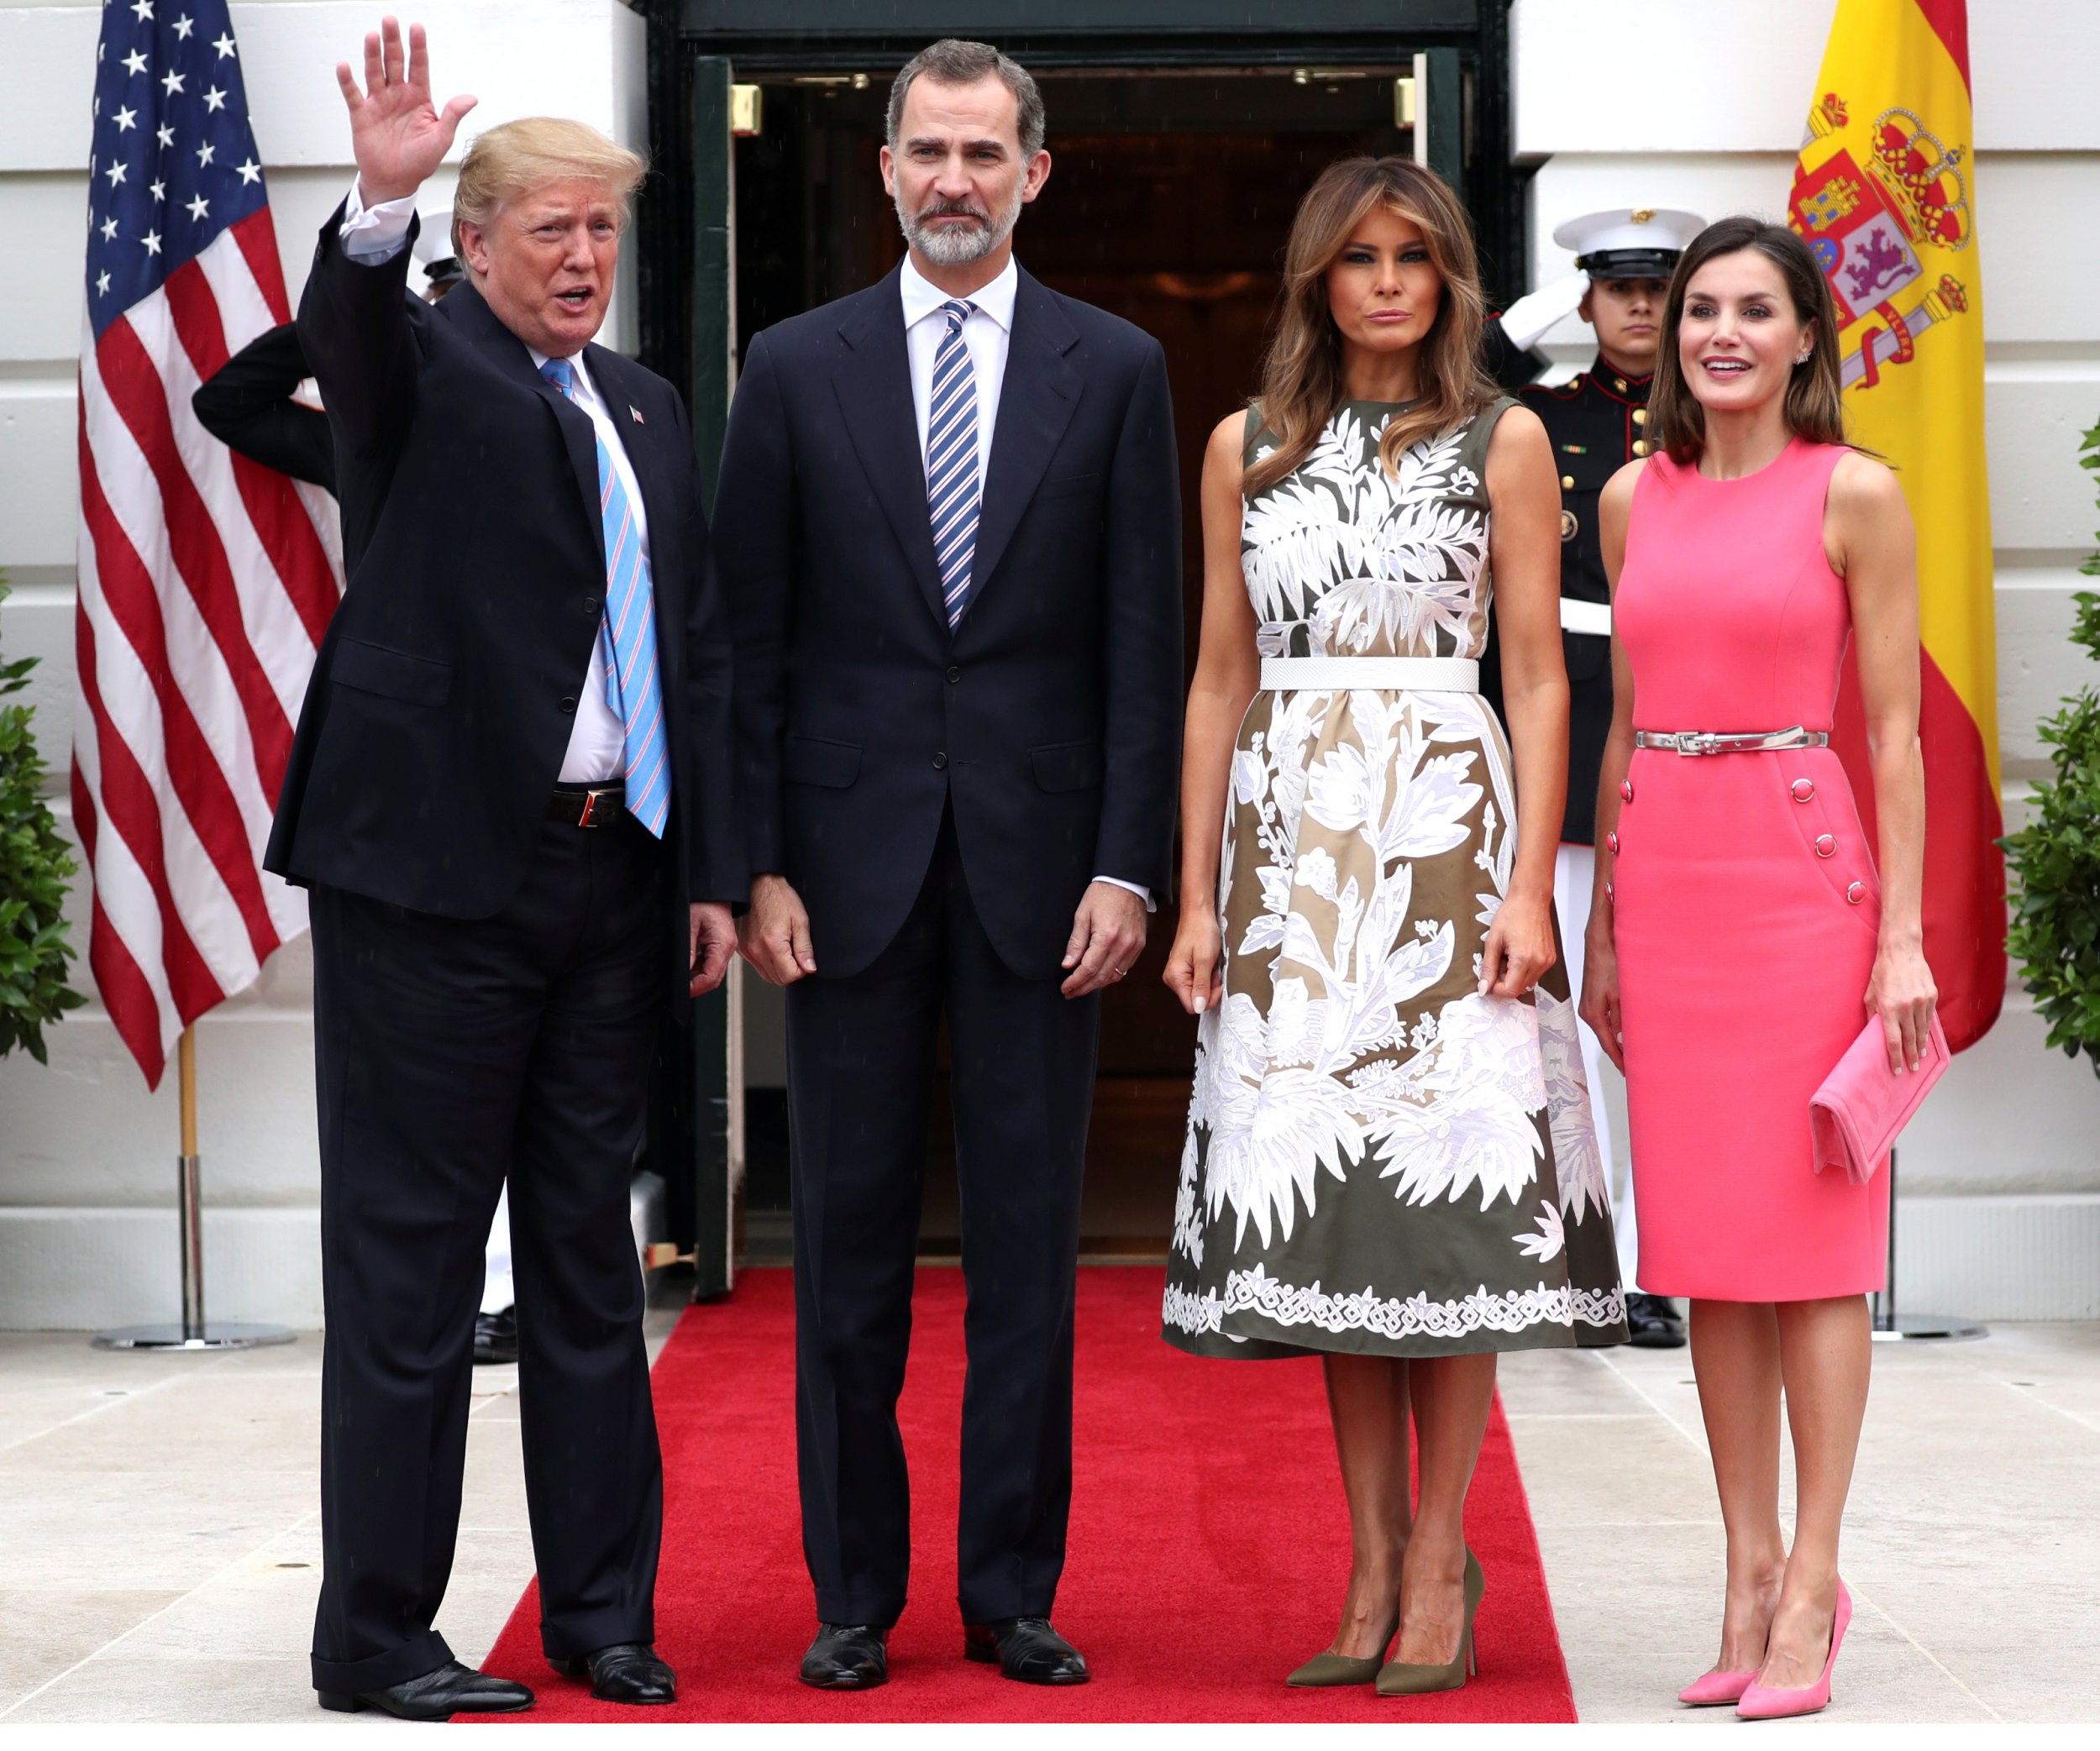 2018-06-19T182224Z_659315931_RC18605C6520_RTRMADP_3_USA-SPAIN-ROYALS